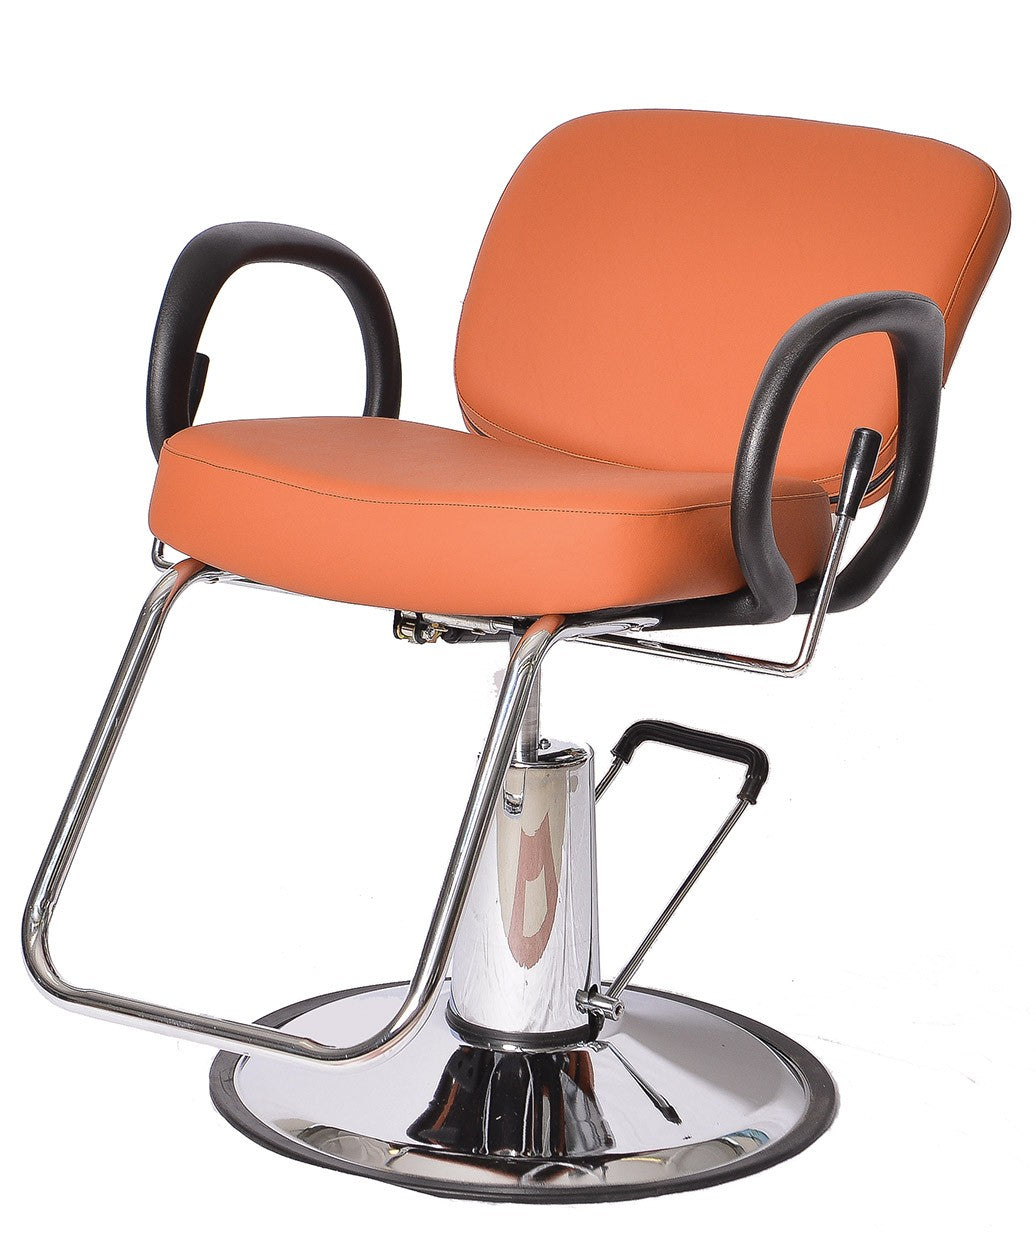 ALL-PURPOSE CHAIRS